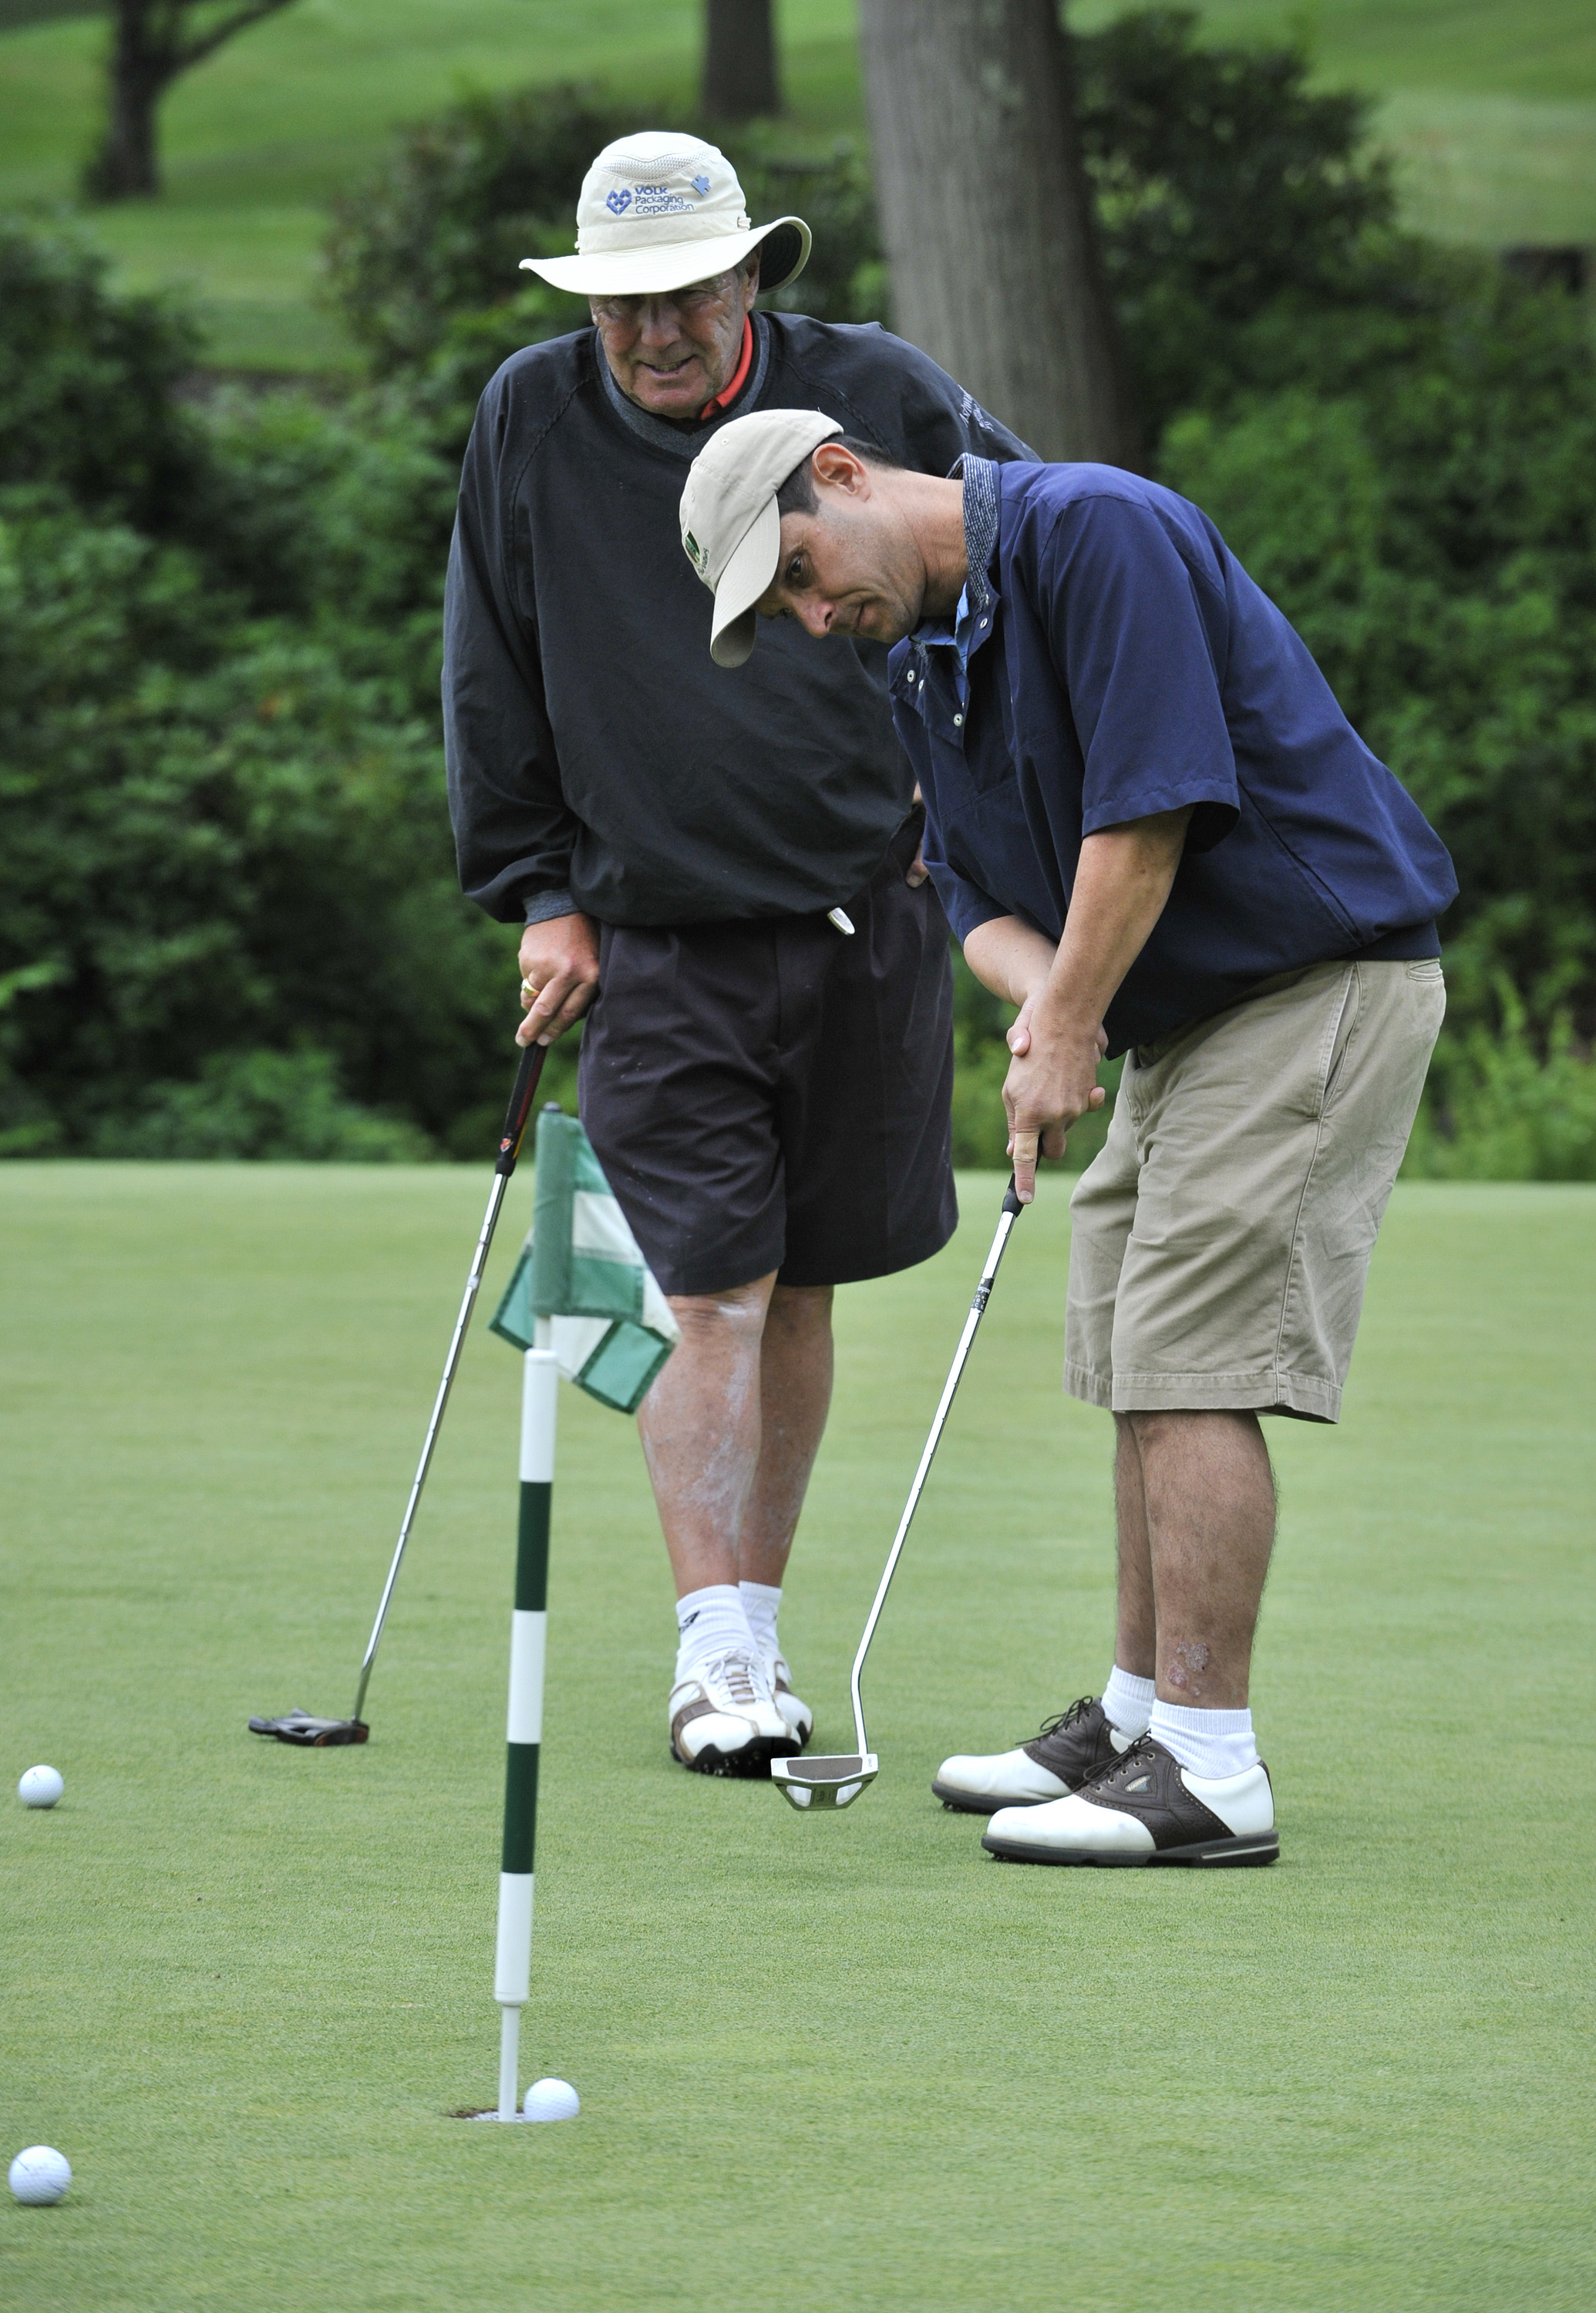 Winchester Country Club hosts annual Father Son Tournament - The